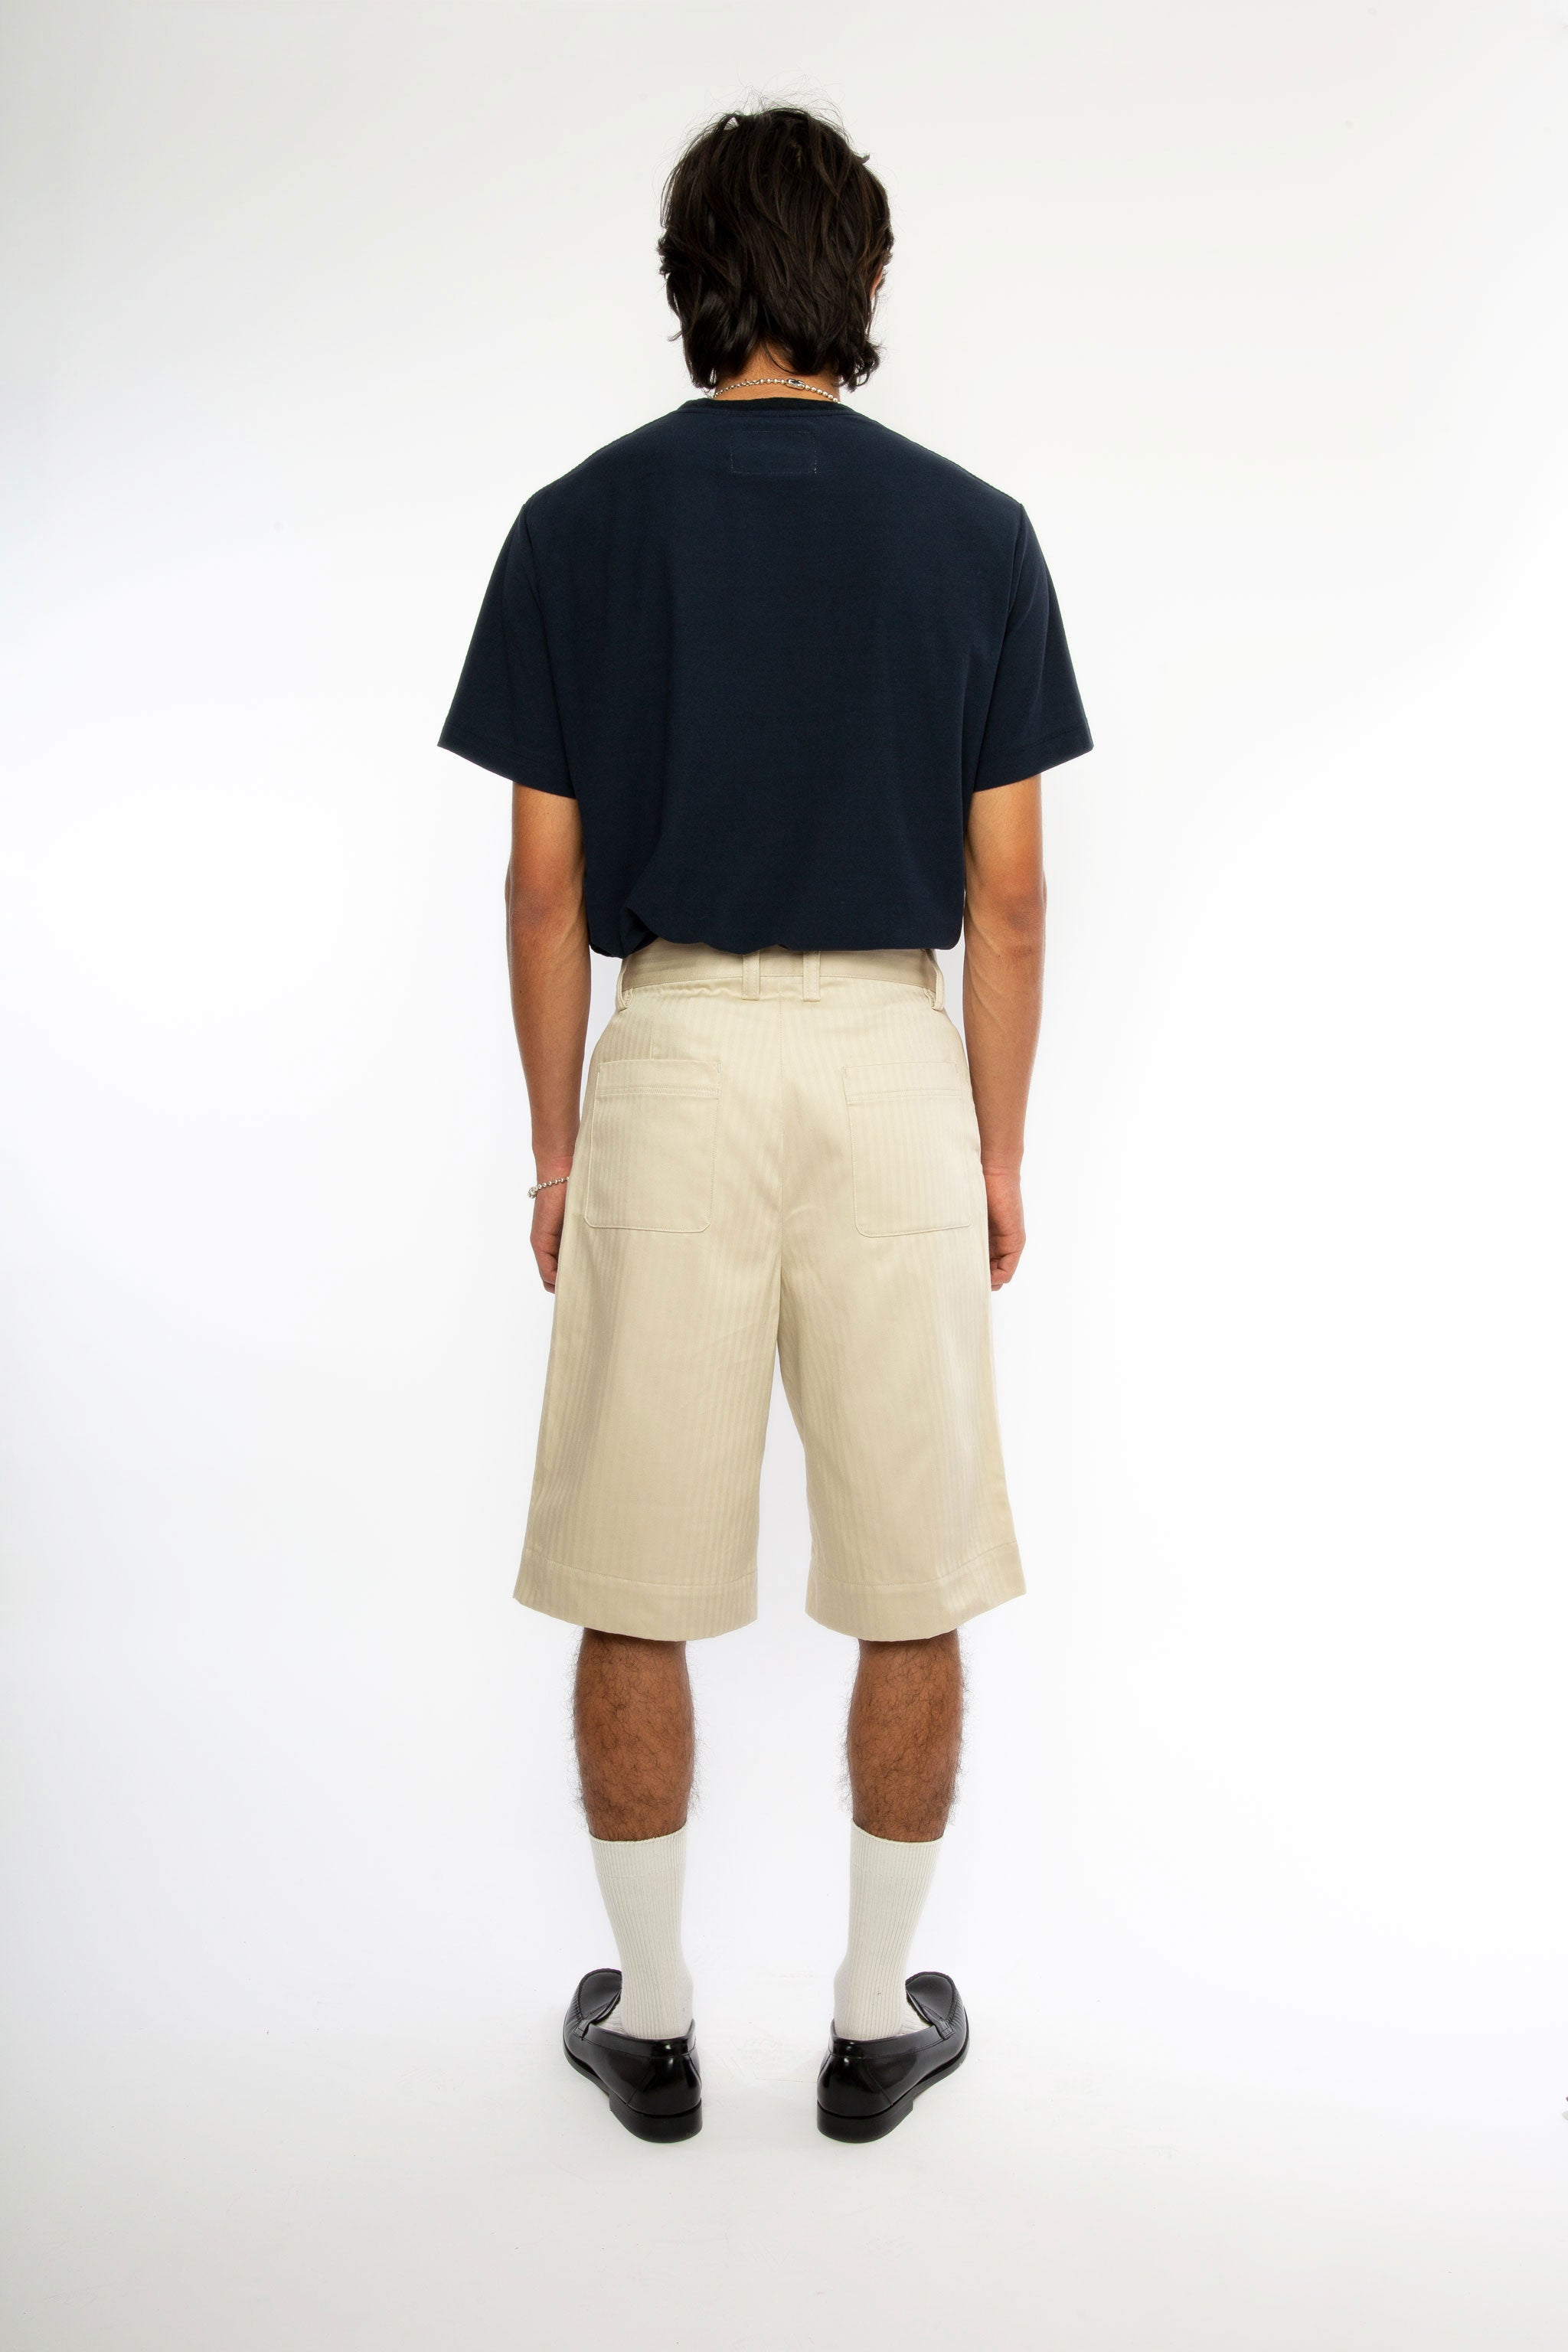 Goodfight SS19 Dreamers Shorts Khaki